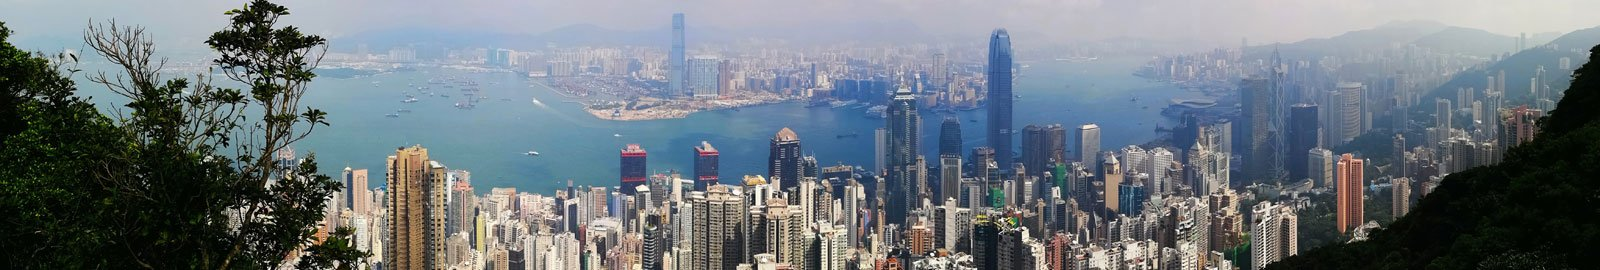 Hong Kong Island at Day with View from the Peak